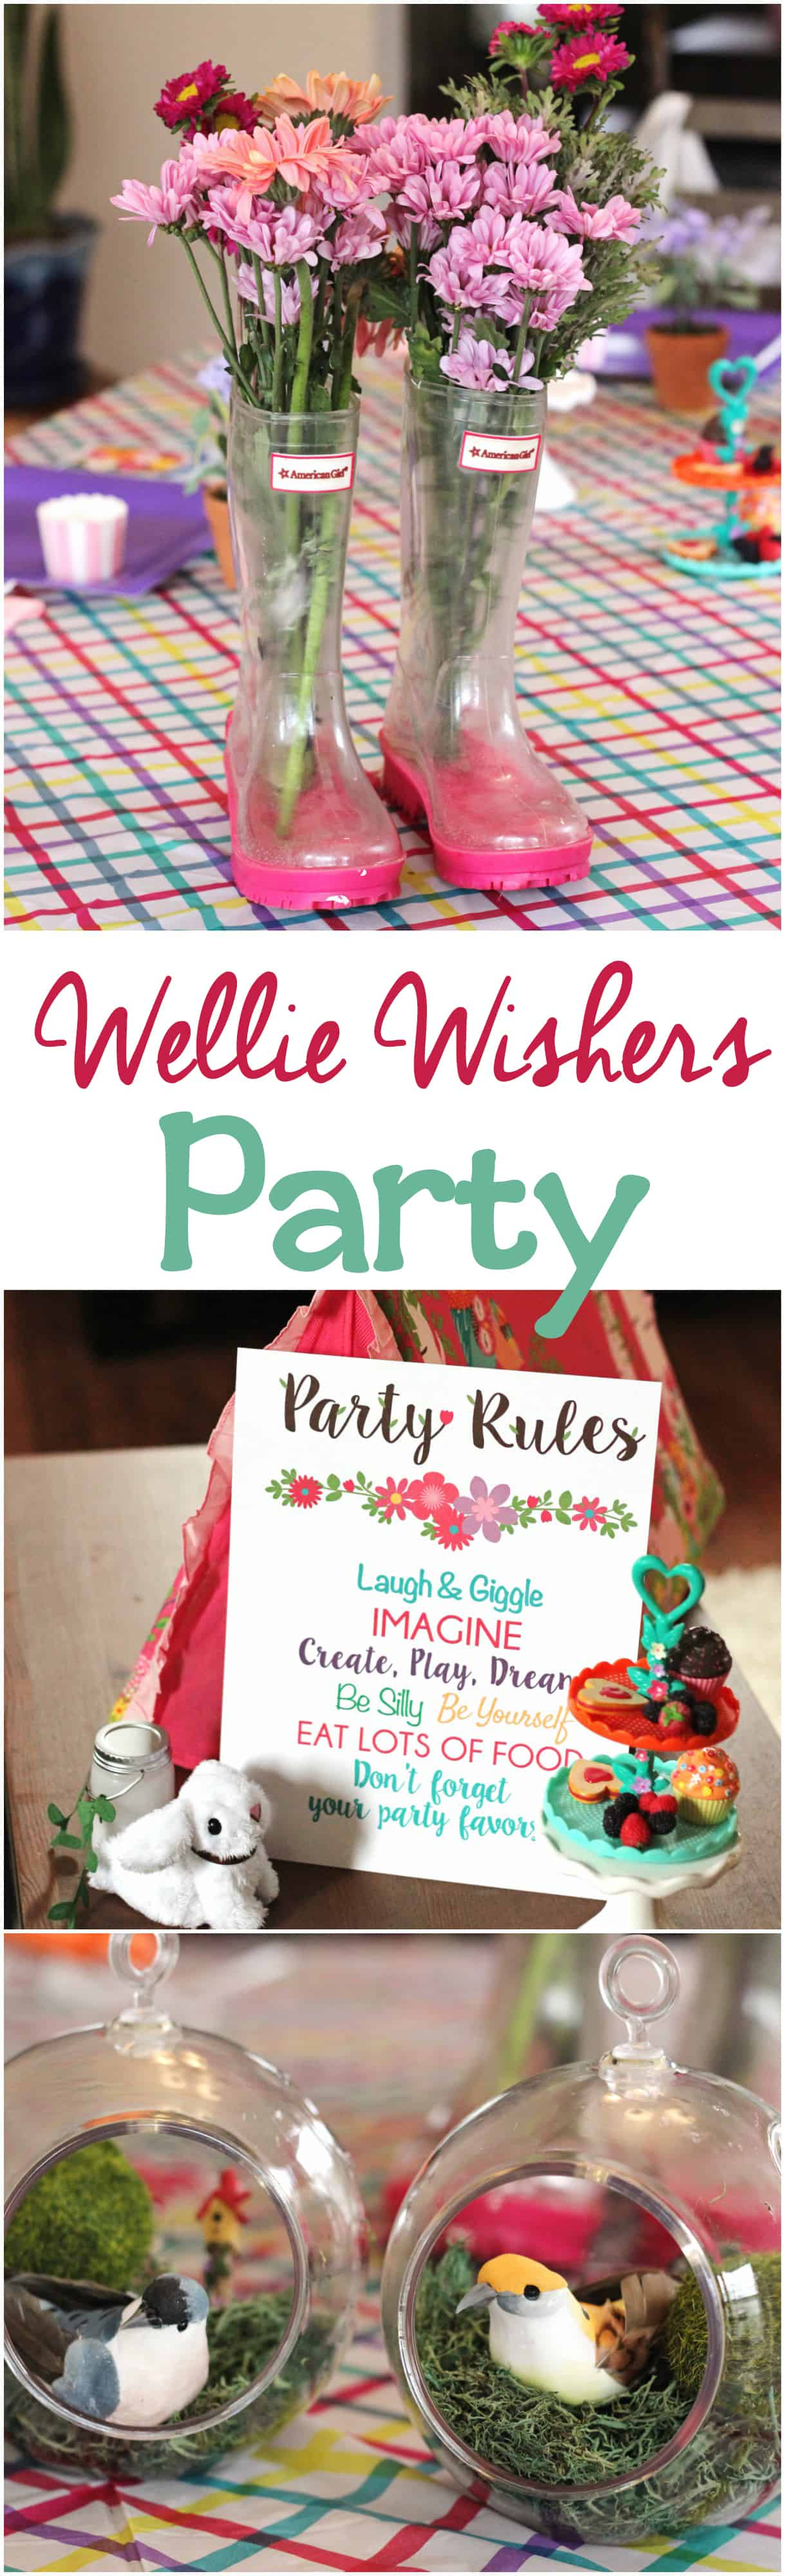 Use these Wellie Wishers printables and ideas to create an epic Wellie Wishers birthday party for your child. Or be like us and have a Wellie Wishers party for your next playdate! No need to wait for someone to turn another year older.